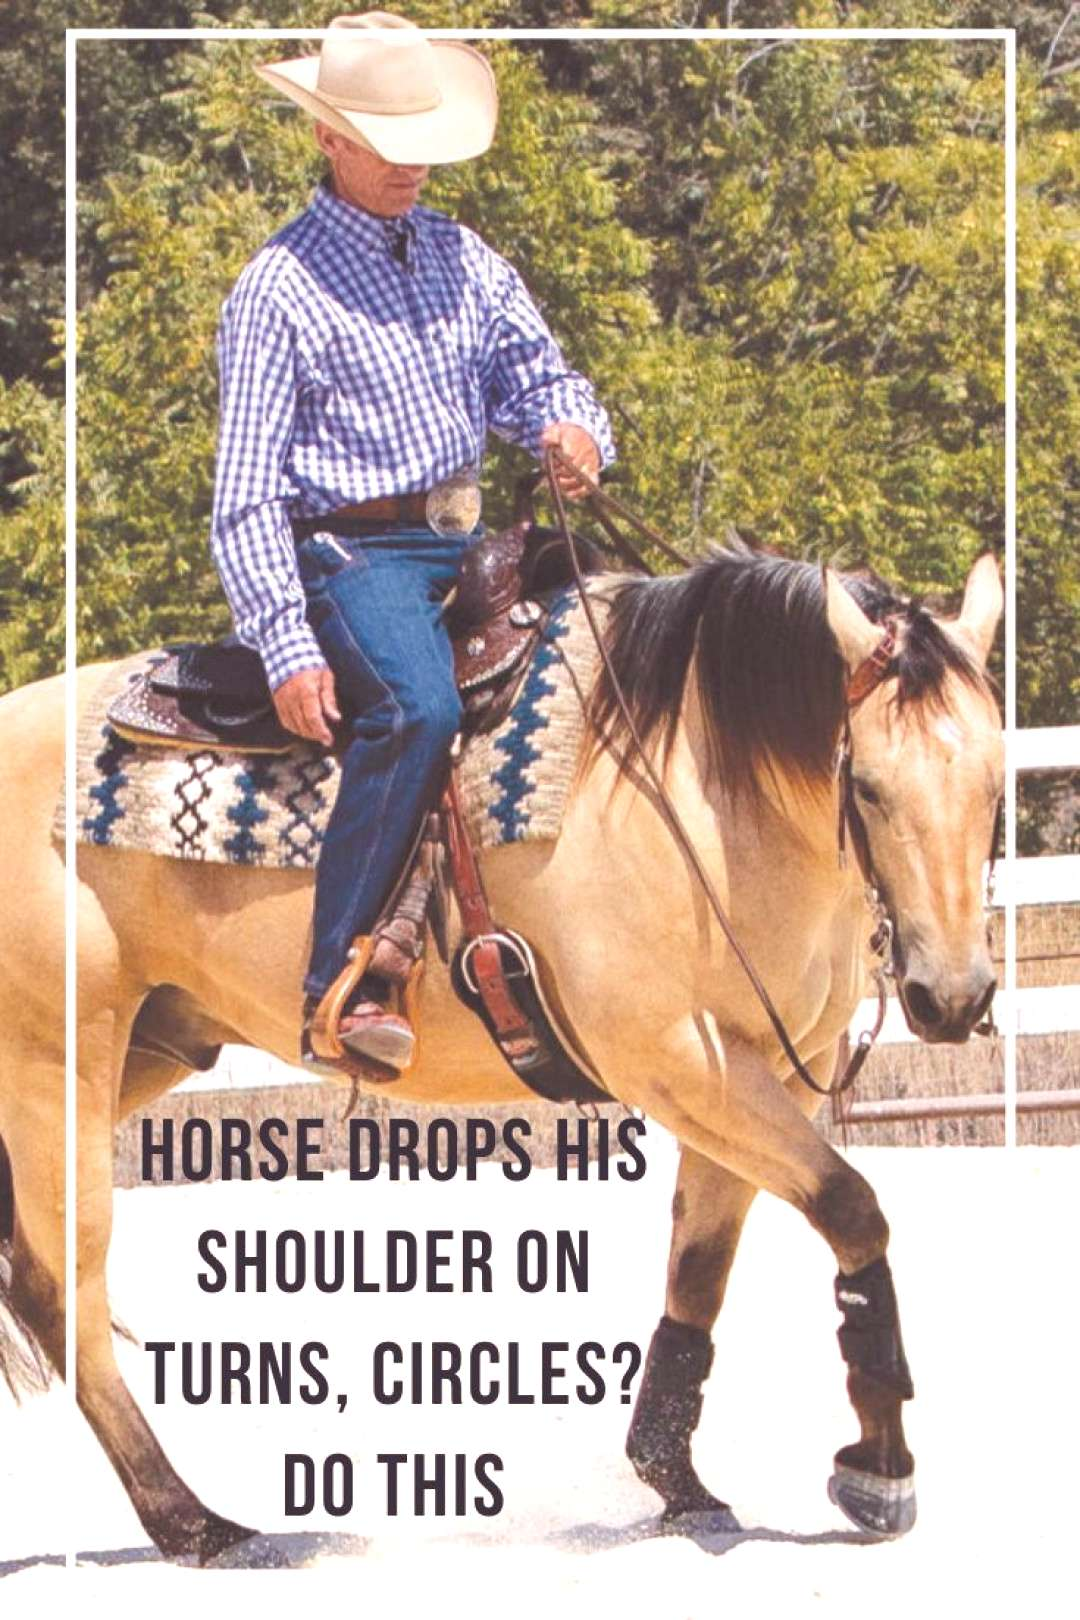 Horse Drops His Shoulder On Turns, Circles? Do This Horse Drops His Shoulder On Turns, Circles? Do